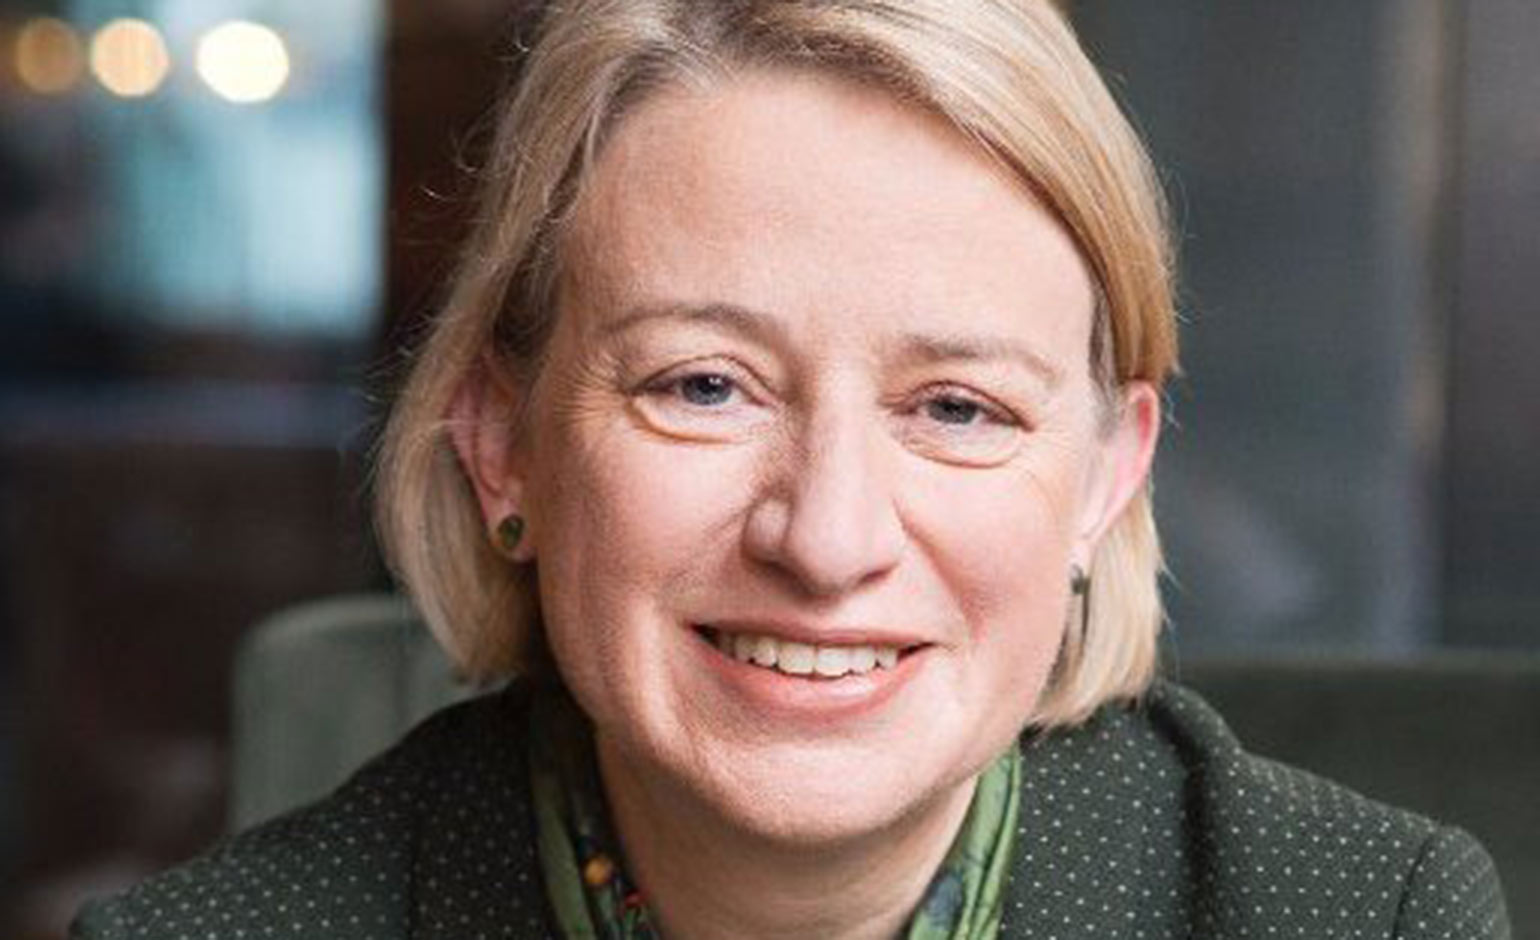 Former Green Party leader Natalie Bennett set to give public talk in Bath